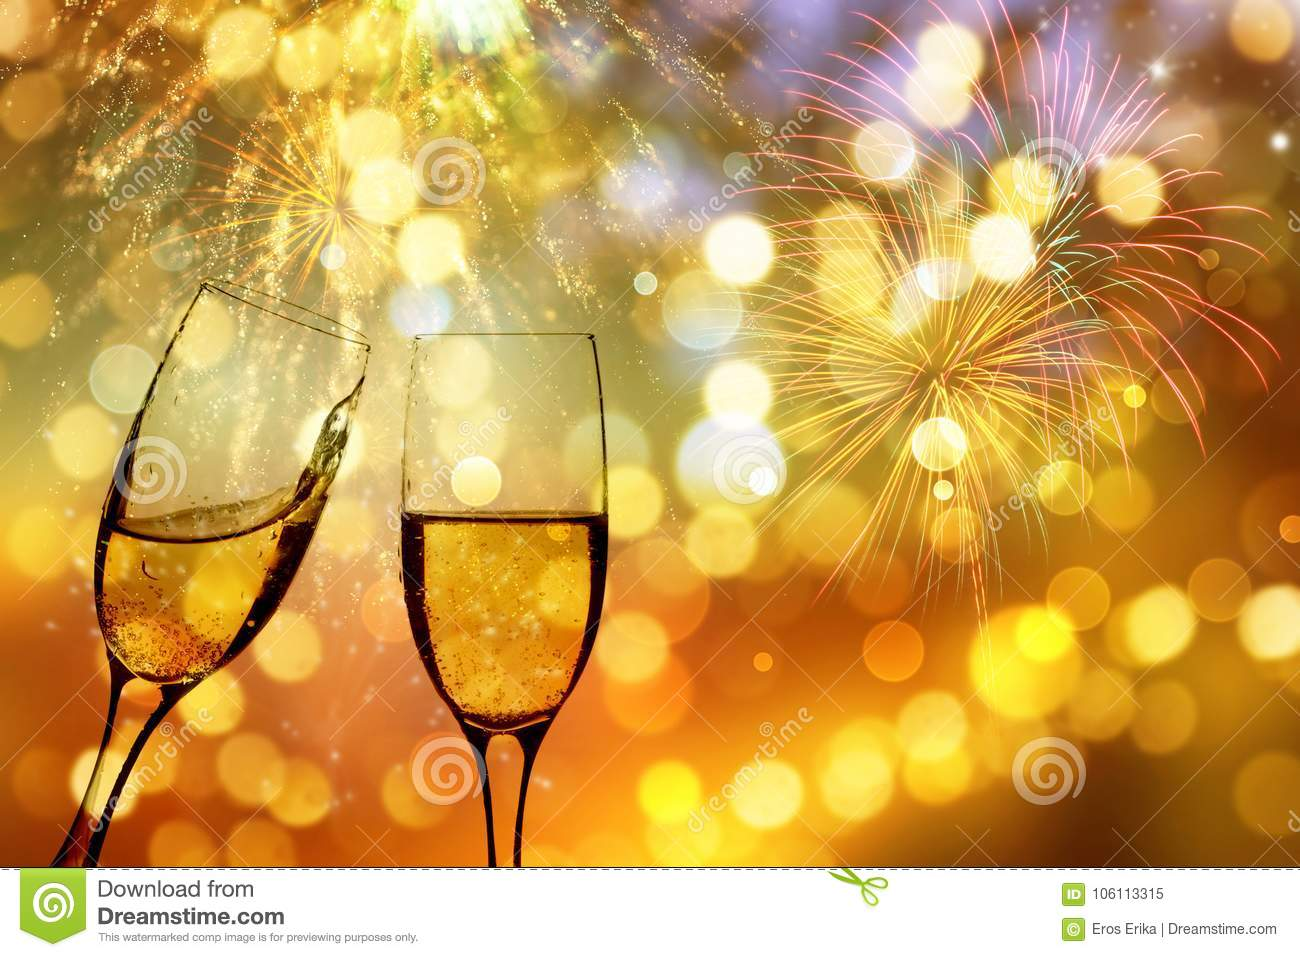 glasses with champagne against fireworks and holiday lights celebrating the new year